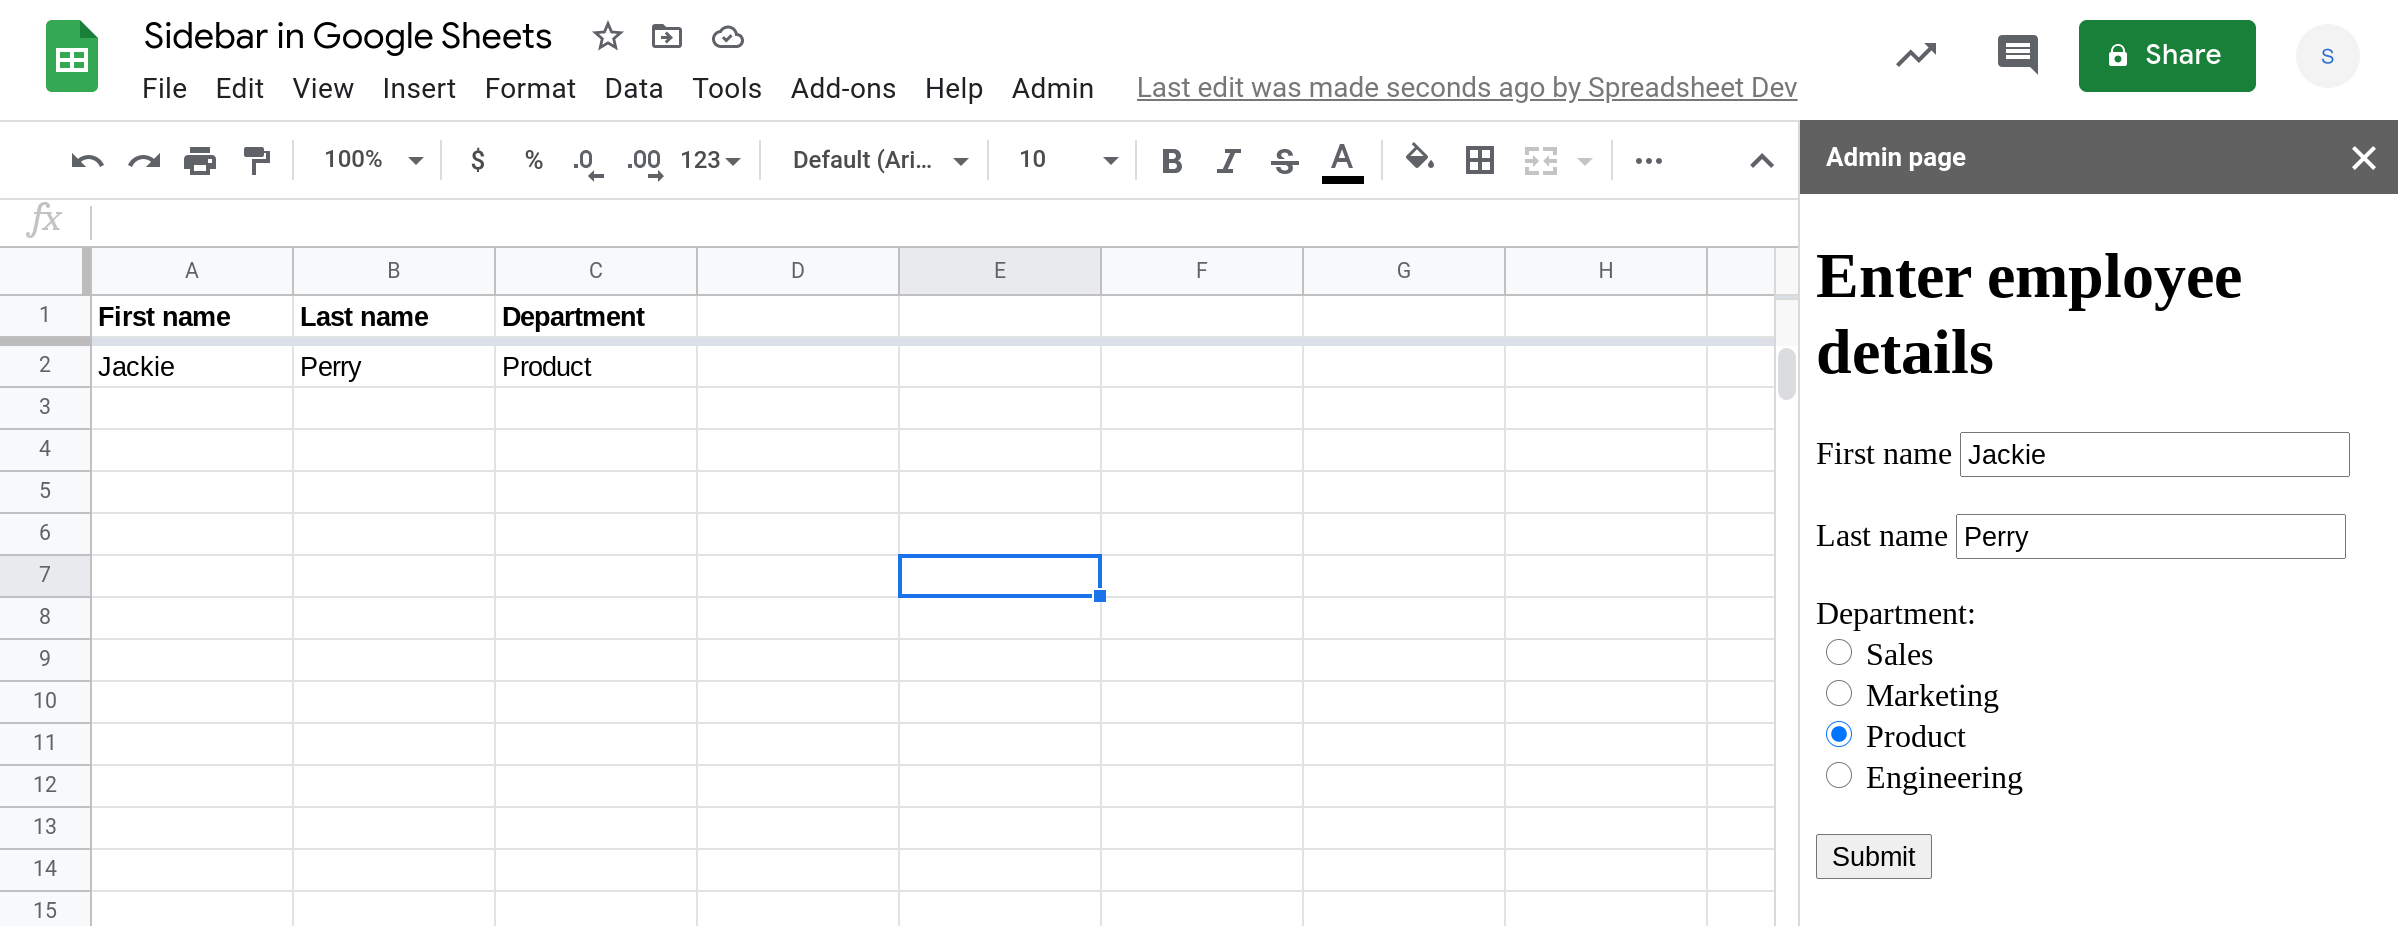 A screenshot of a custom data entry form in a sidebar in Google Sheets.